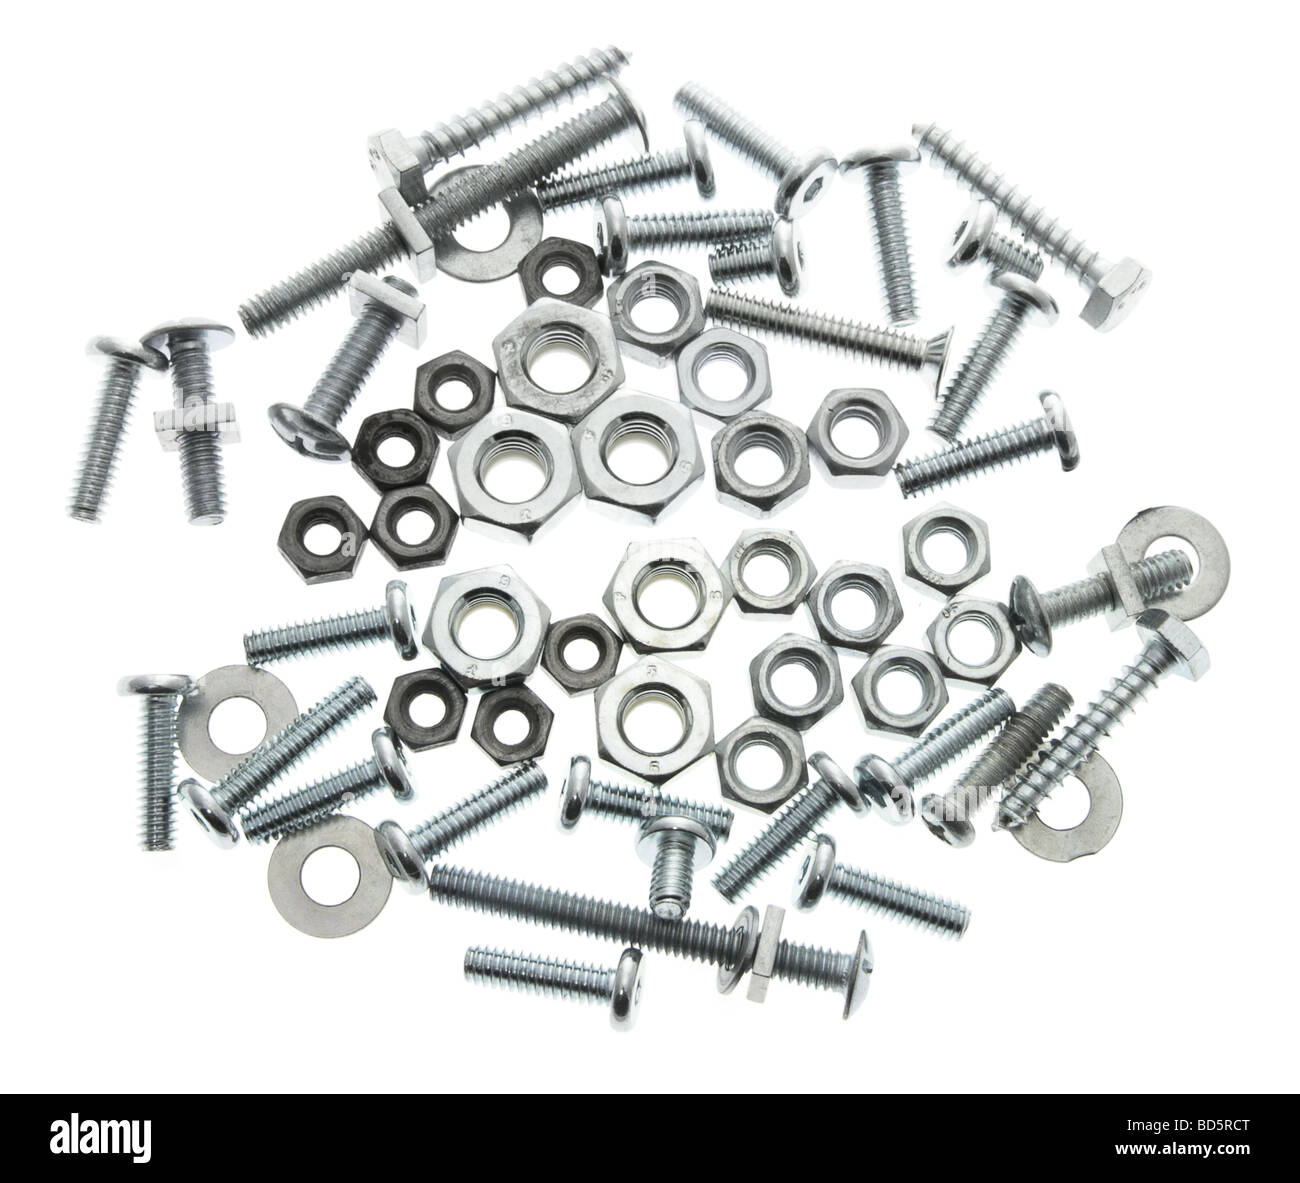 Spanners with Nuts and Bolts - Stock Image